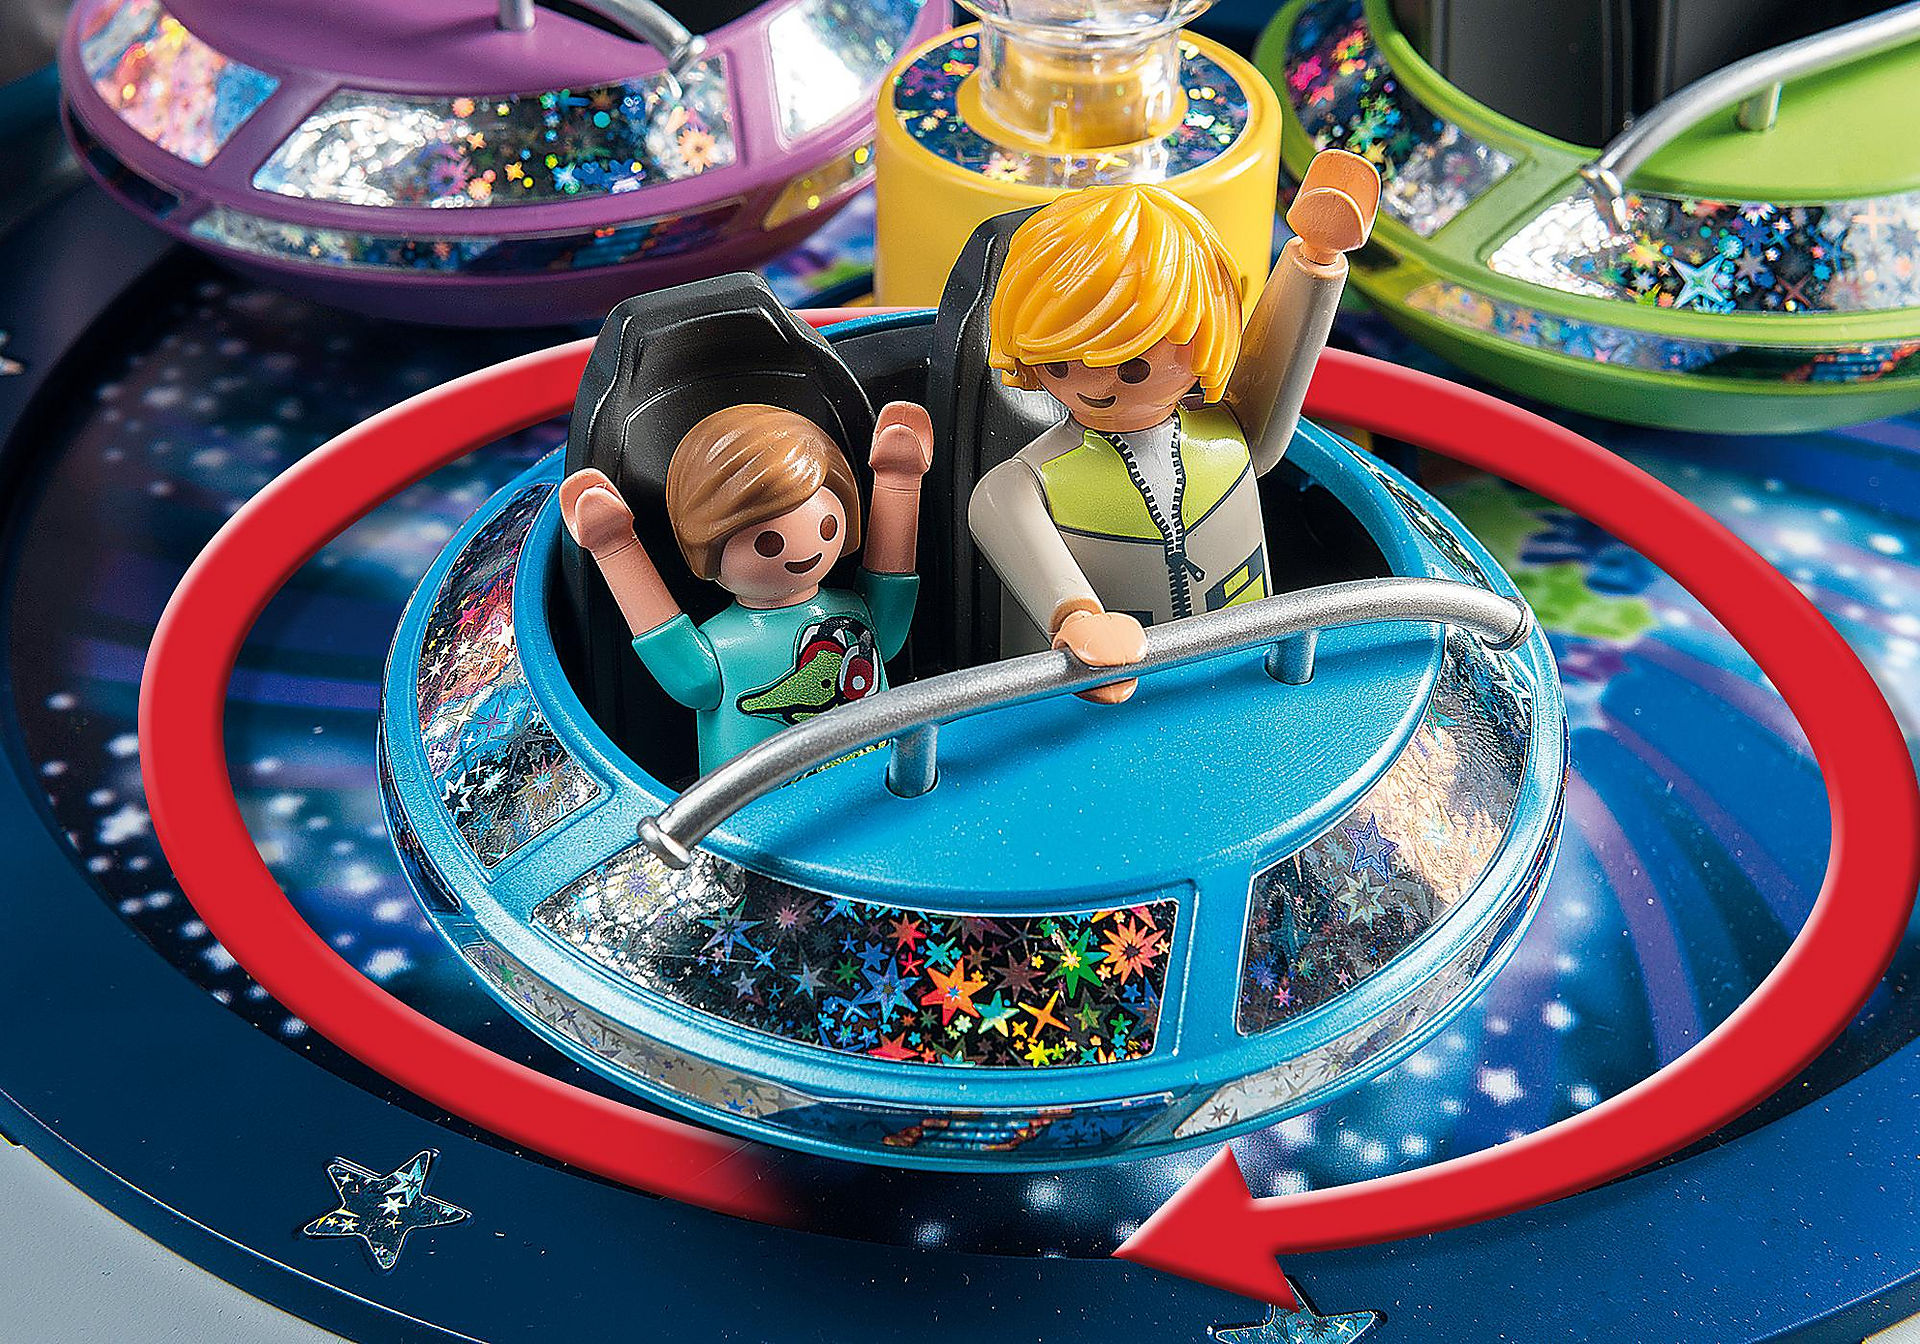 5554 Spinning Spaceship Ride with Lights zoom image4